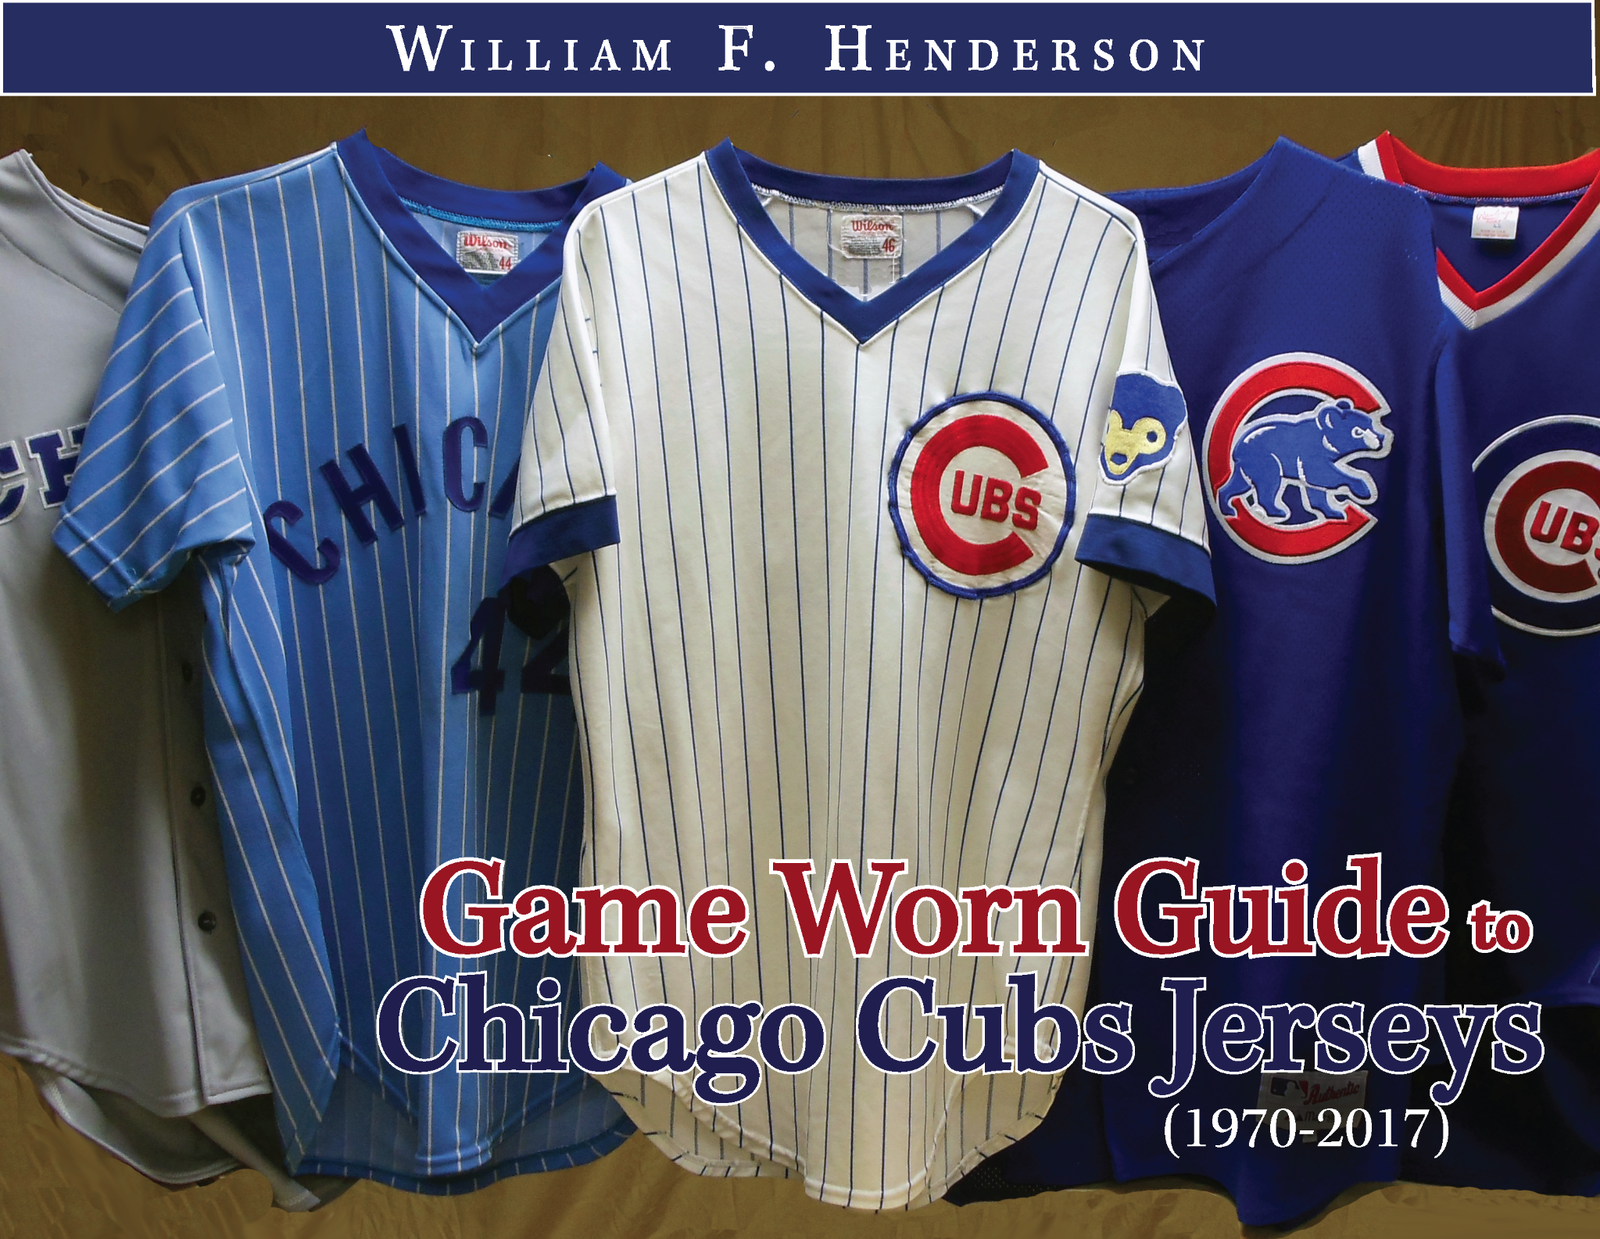 sports shoes 3e811 7dc14 Game Worn Guide to Chicago Cubs jerseys (1970-2017) - Game Worn Guides /  William Henderson